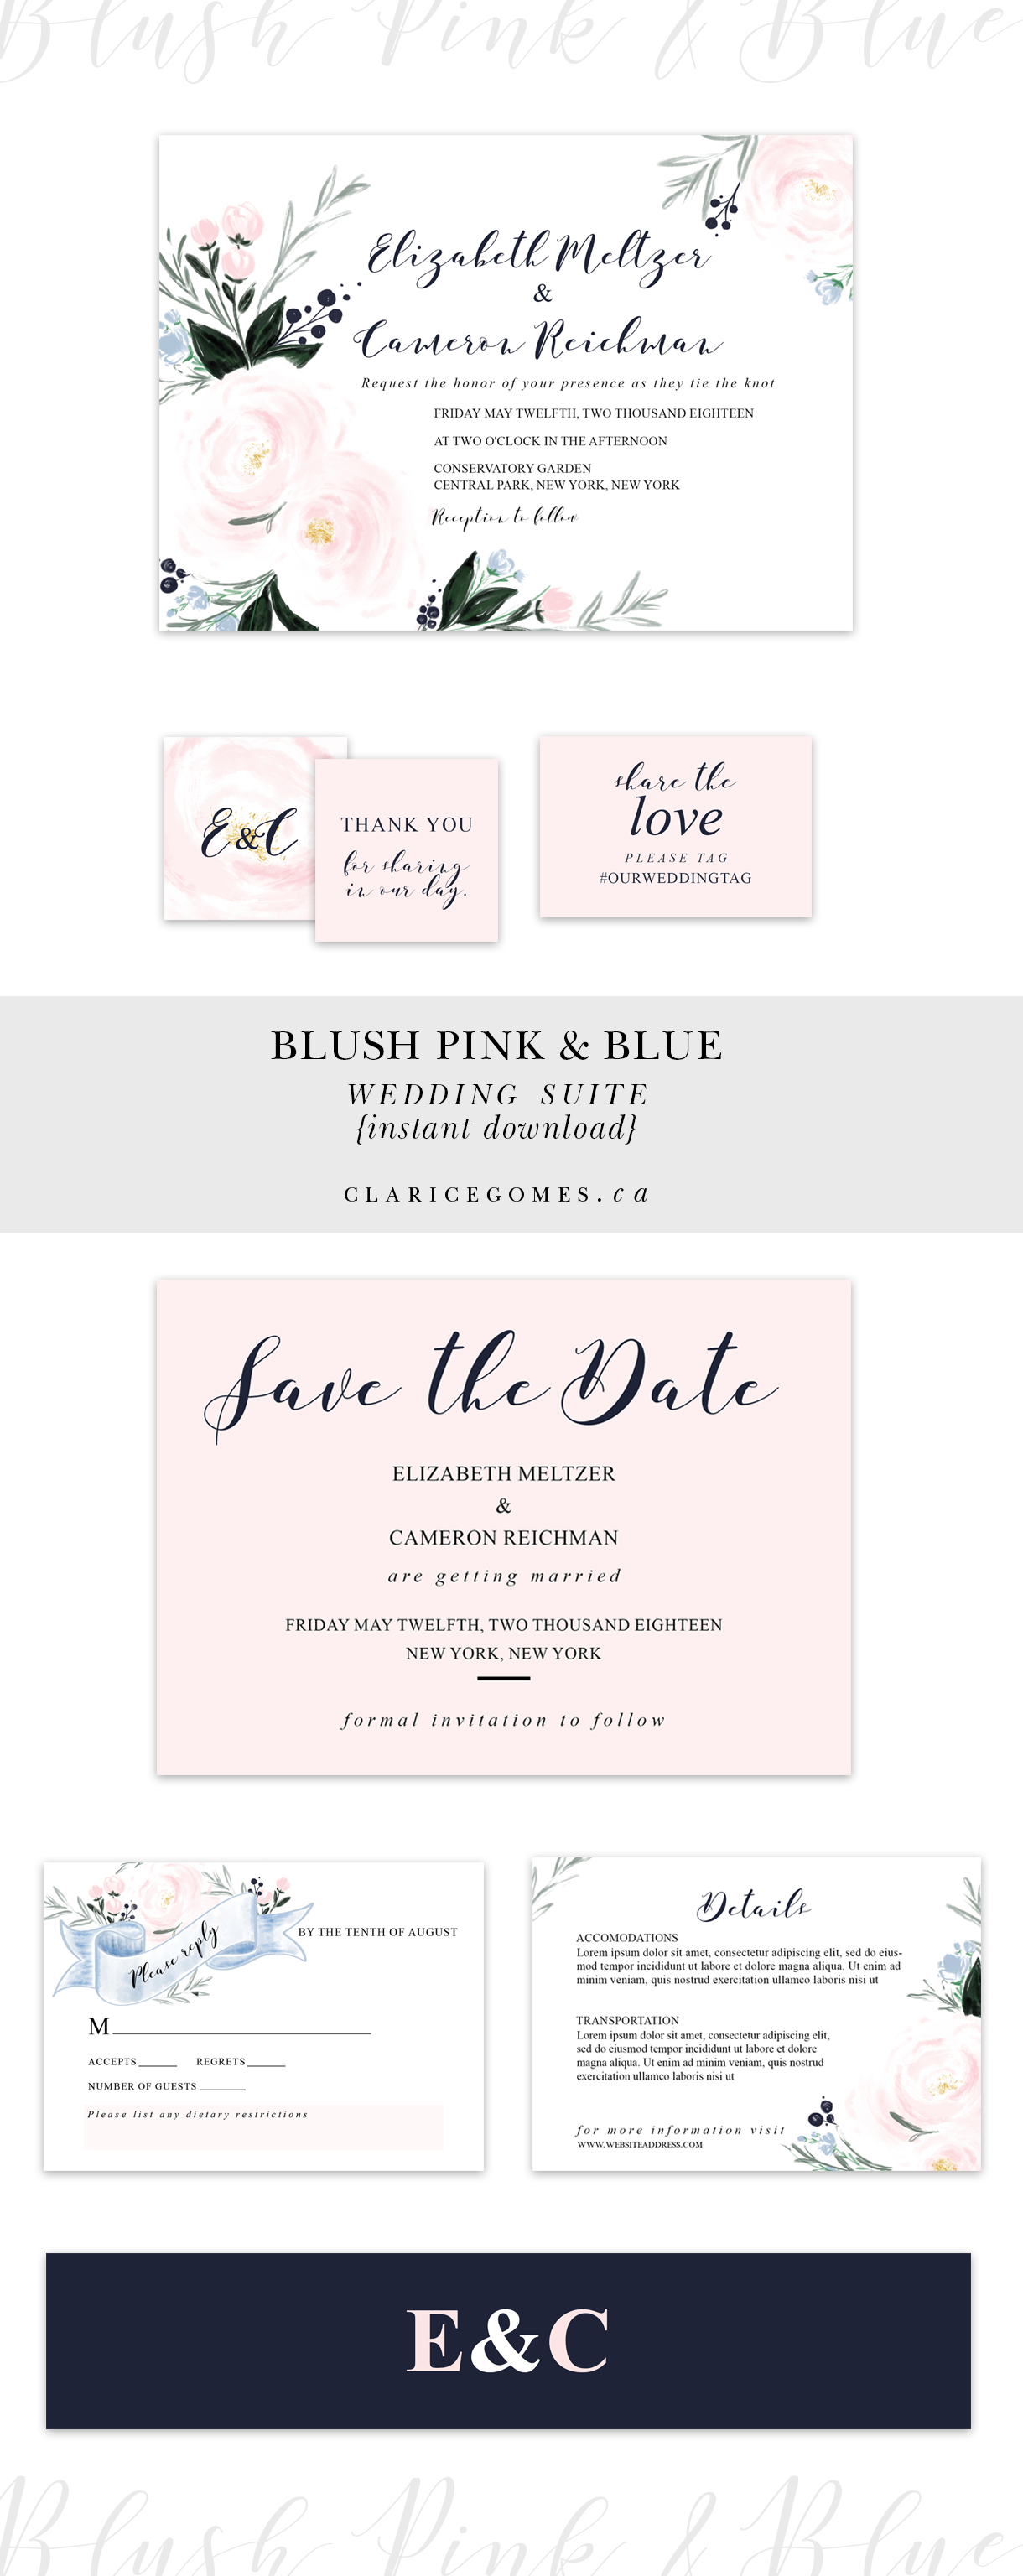 Wedding-suite-layout-blush-pinkblue